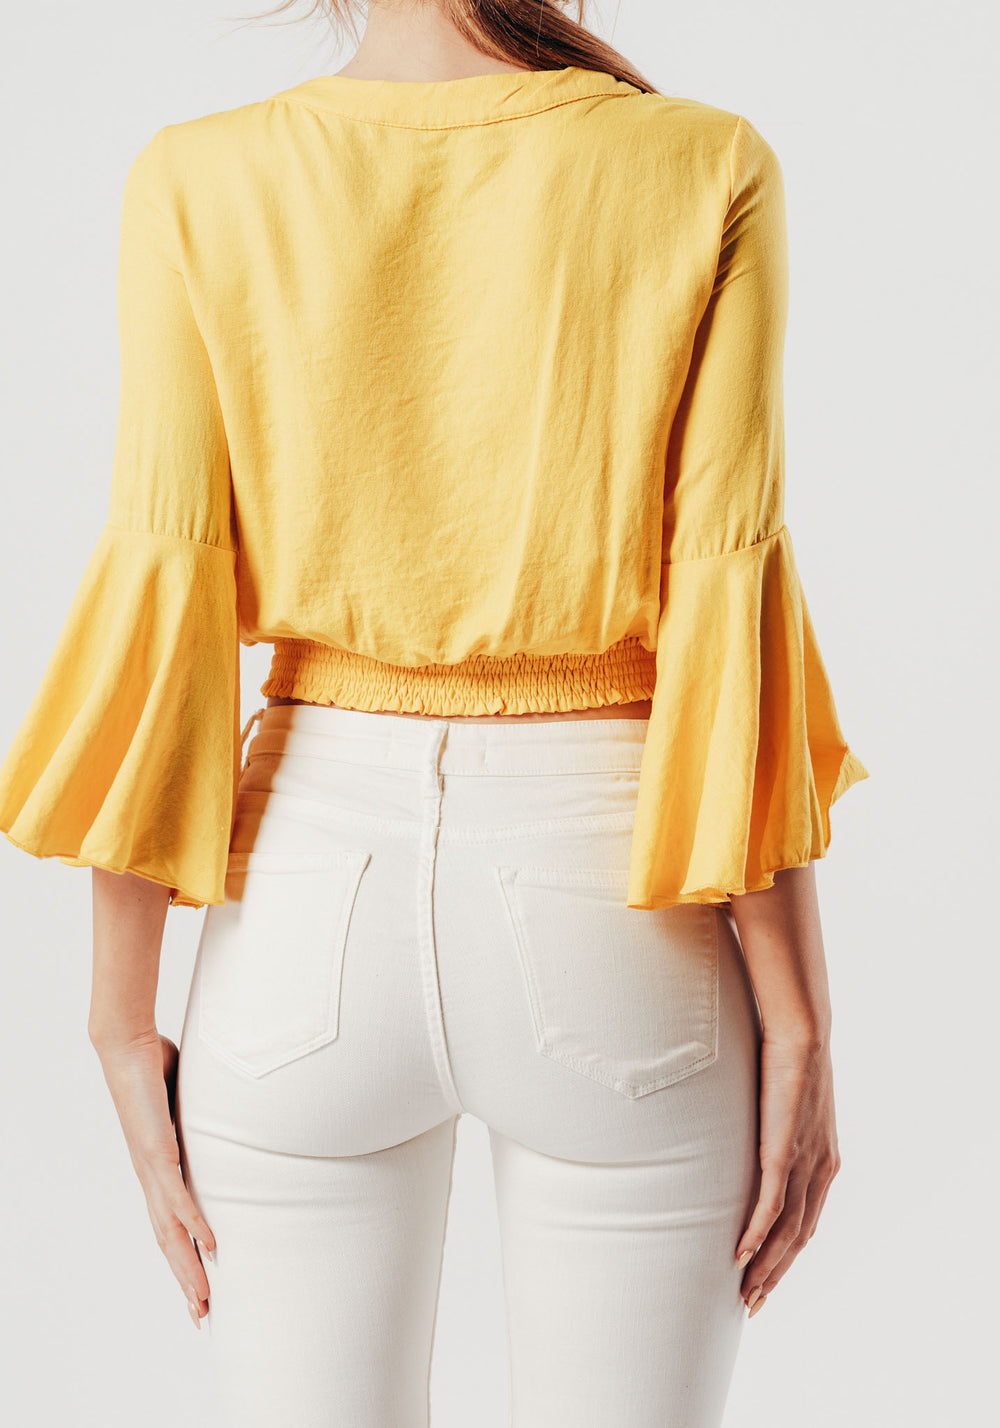 Yellow Wrap Over Style Blouse With Bell Sleeves